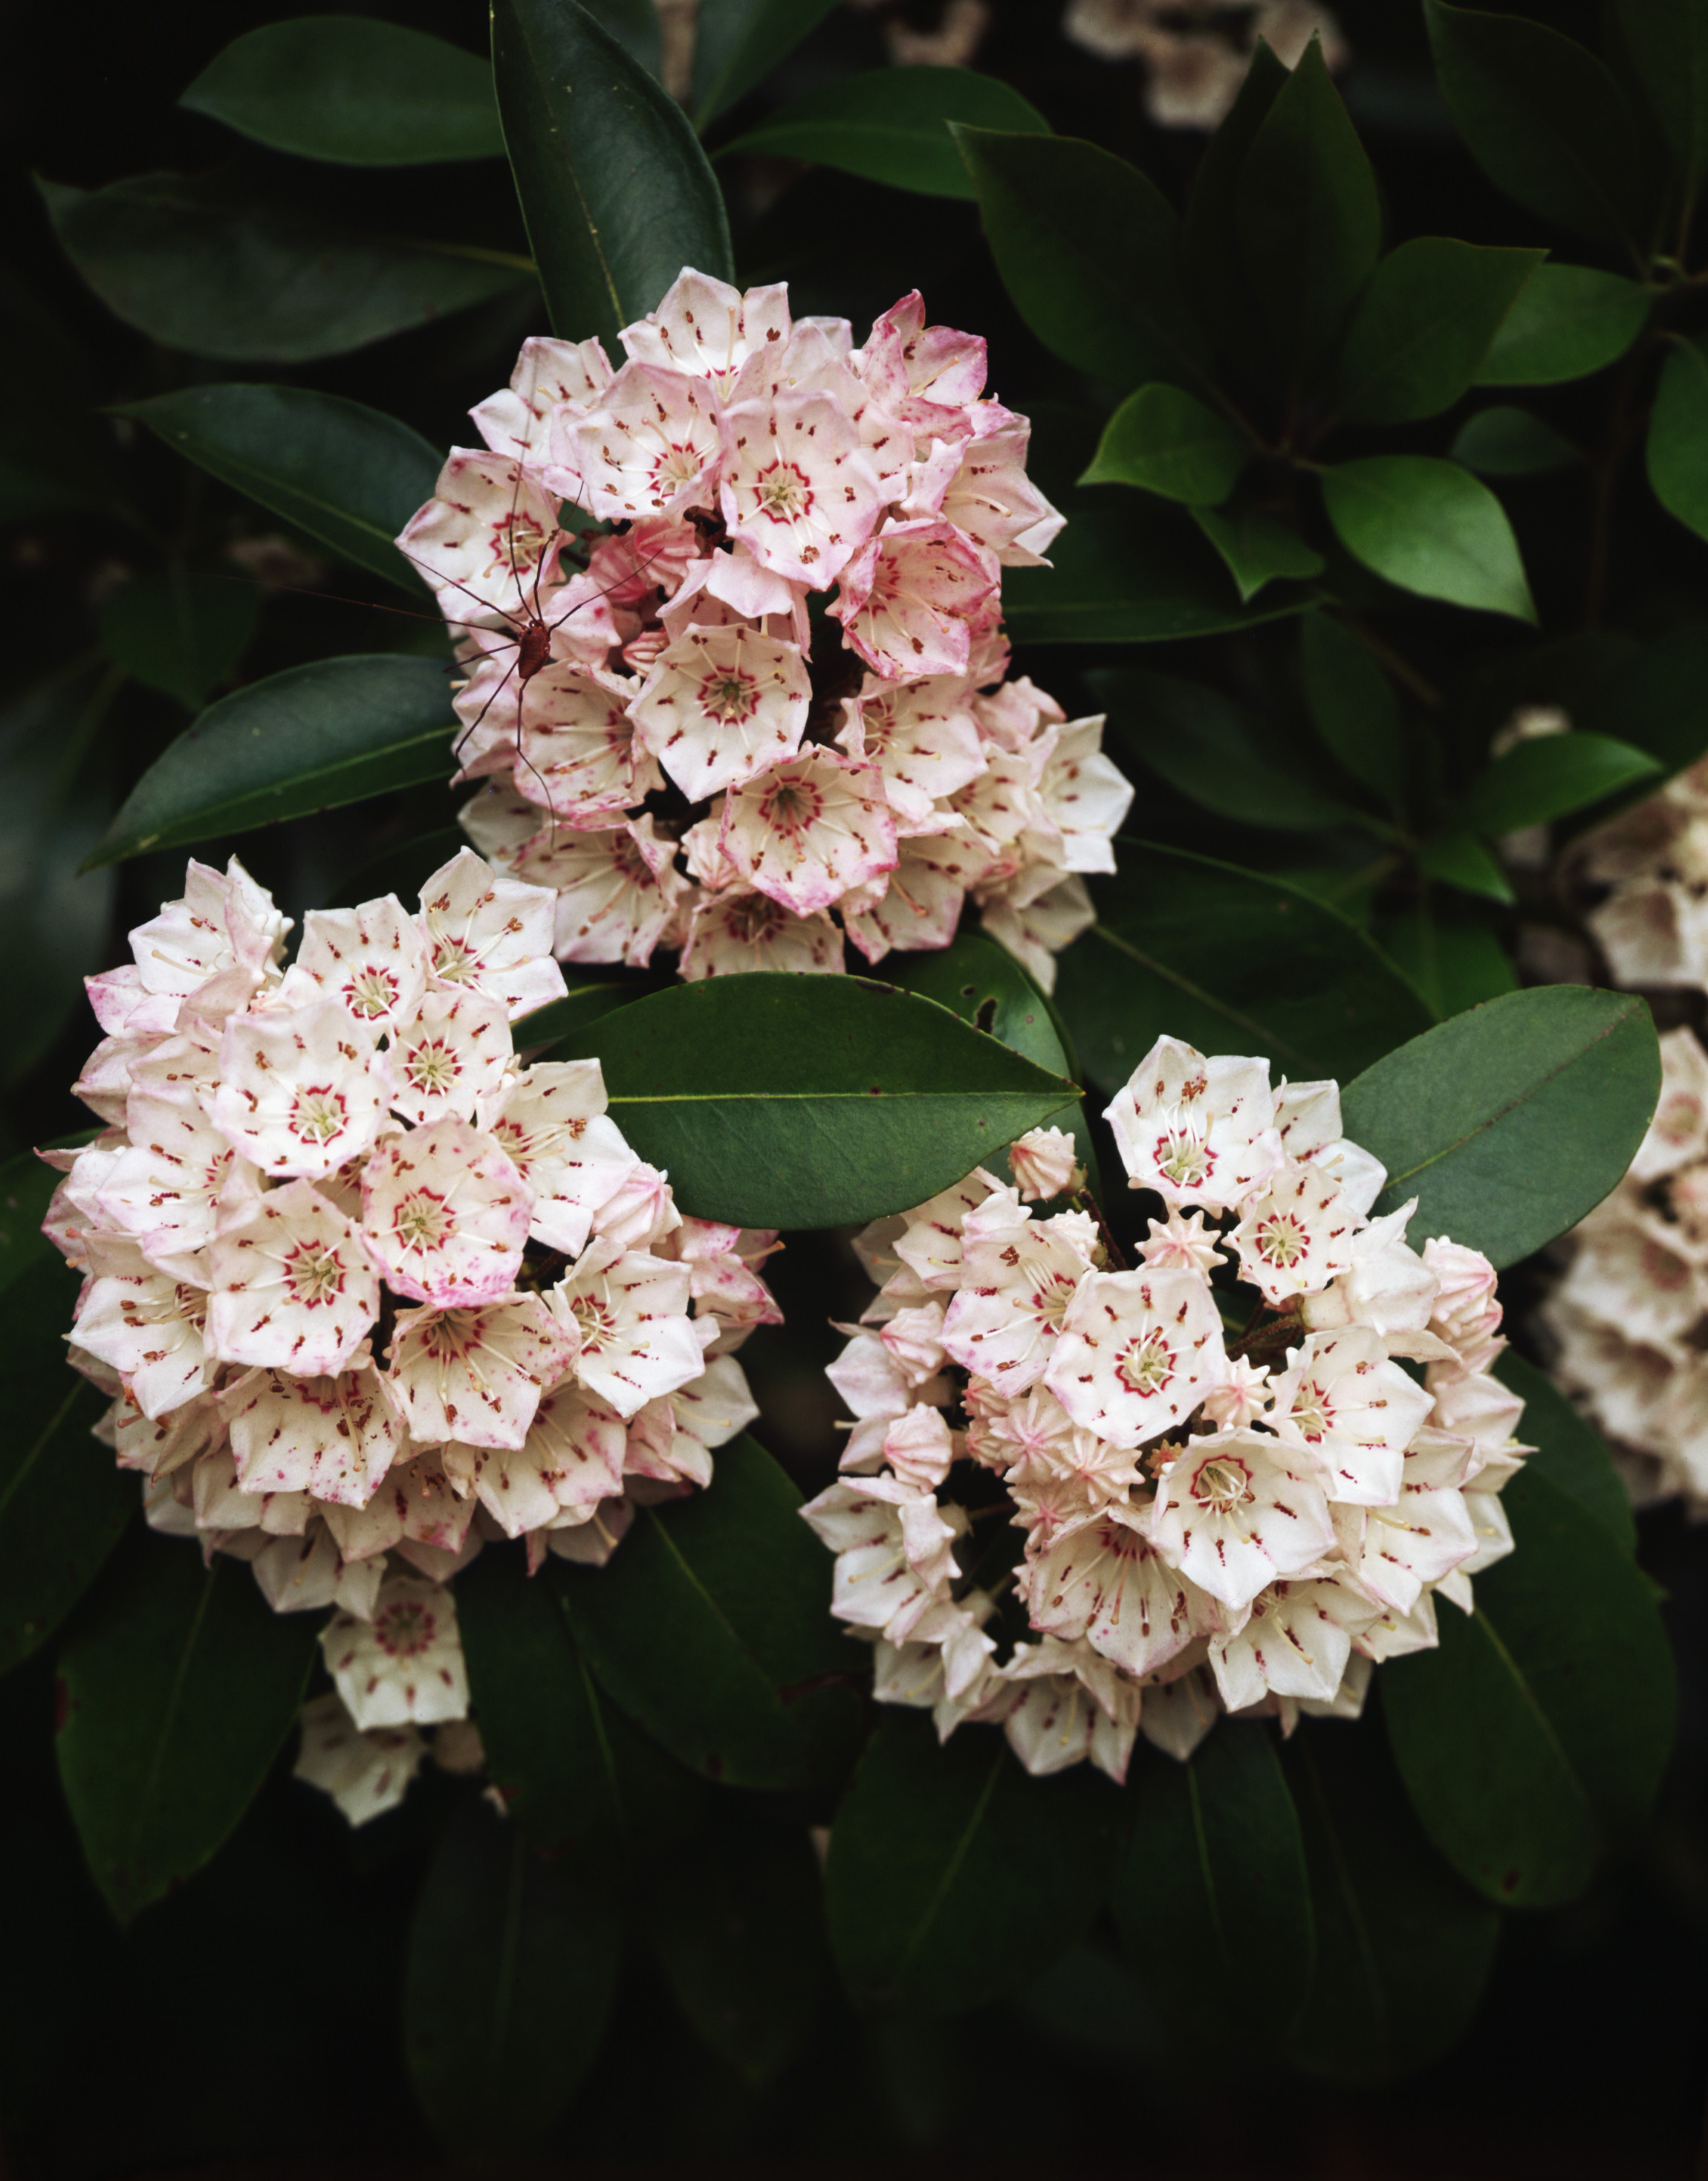 State Flower, Mountain Laurel, Native American Shrubs, Connecticut ‹ ›